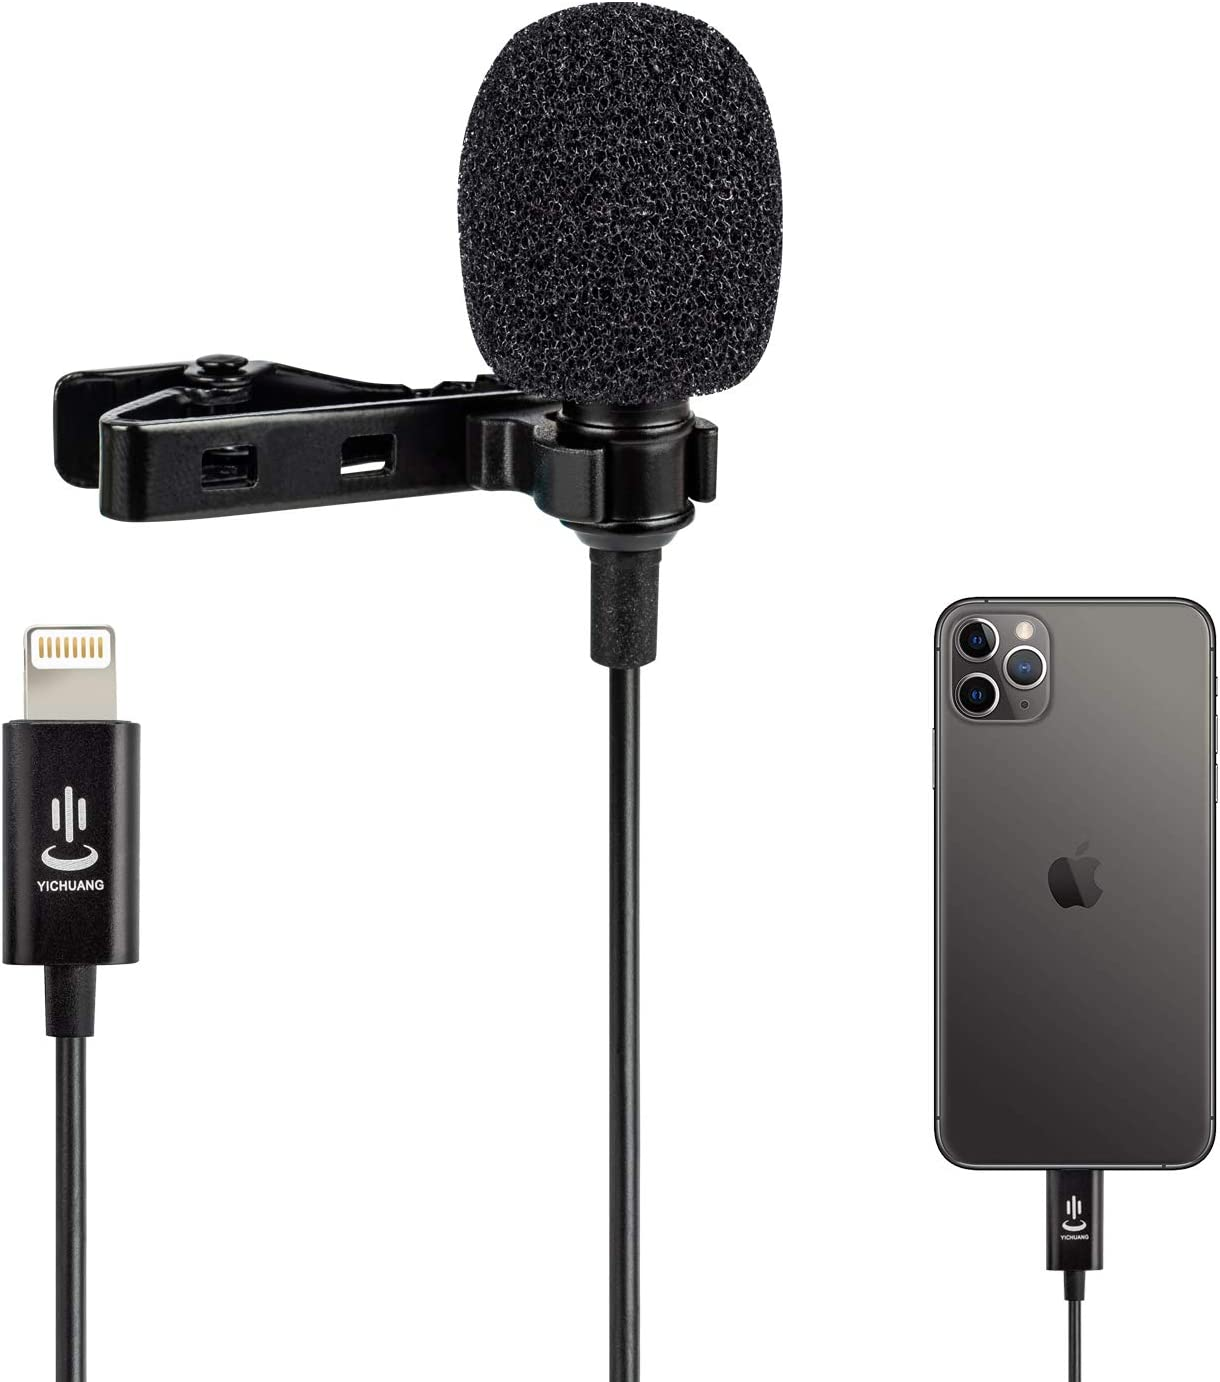 Amazon Com Professional Lavalier Lapel Microphone Omnidirectional Condenser Mic For Iphone 7 7 Plus 8 8 Plus 11 11 Pro 11 Pro Max Iphone X Xs Xr Youtube Vlogging Facebook Interview Livestream Video Recording Musical Instruments